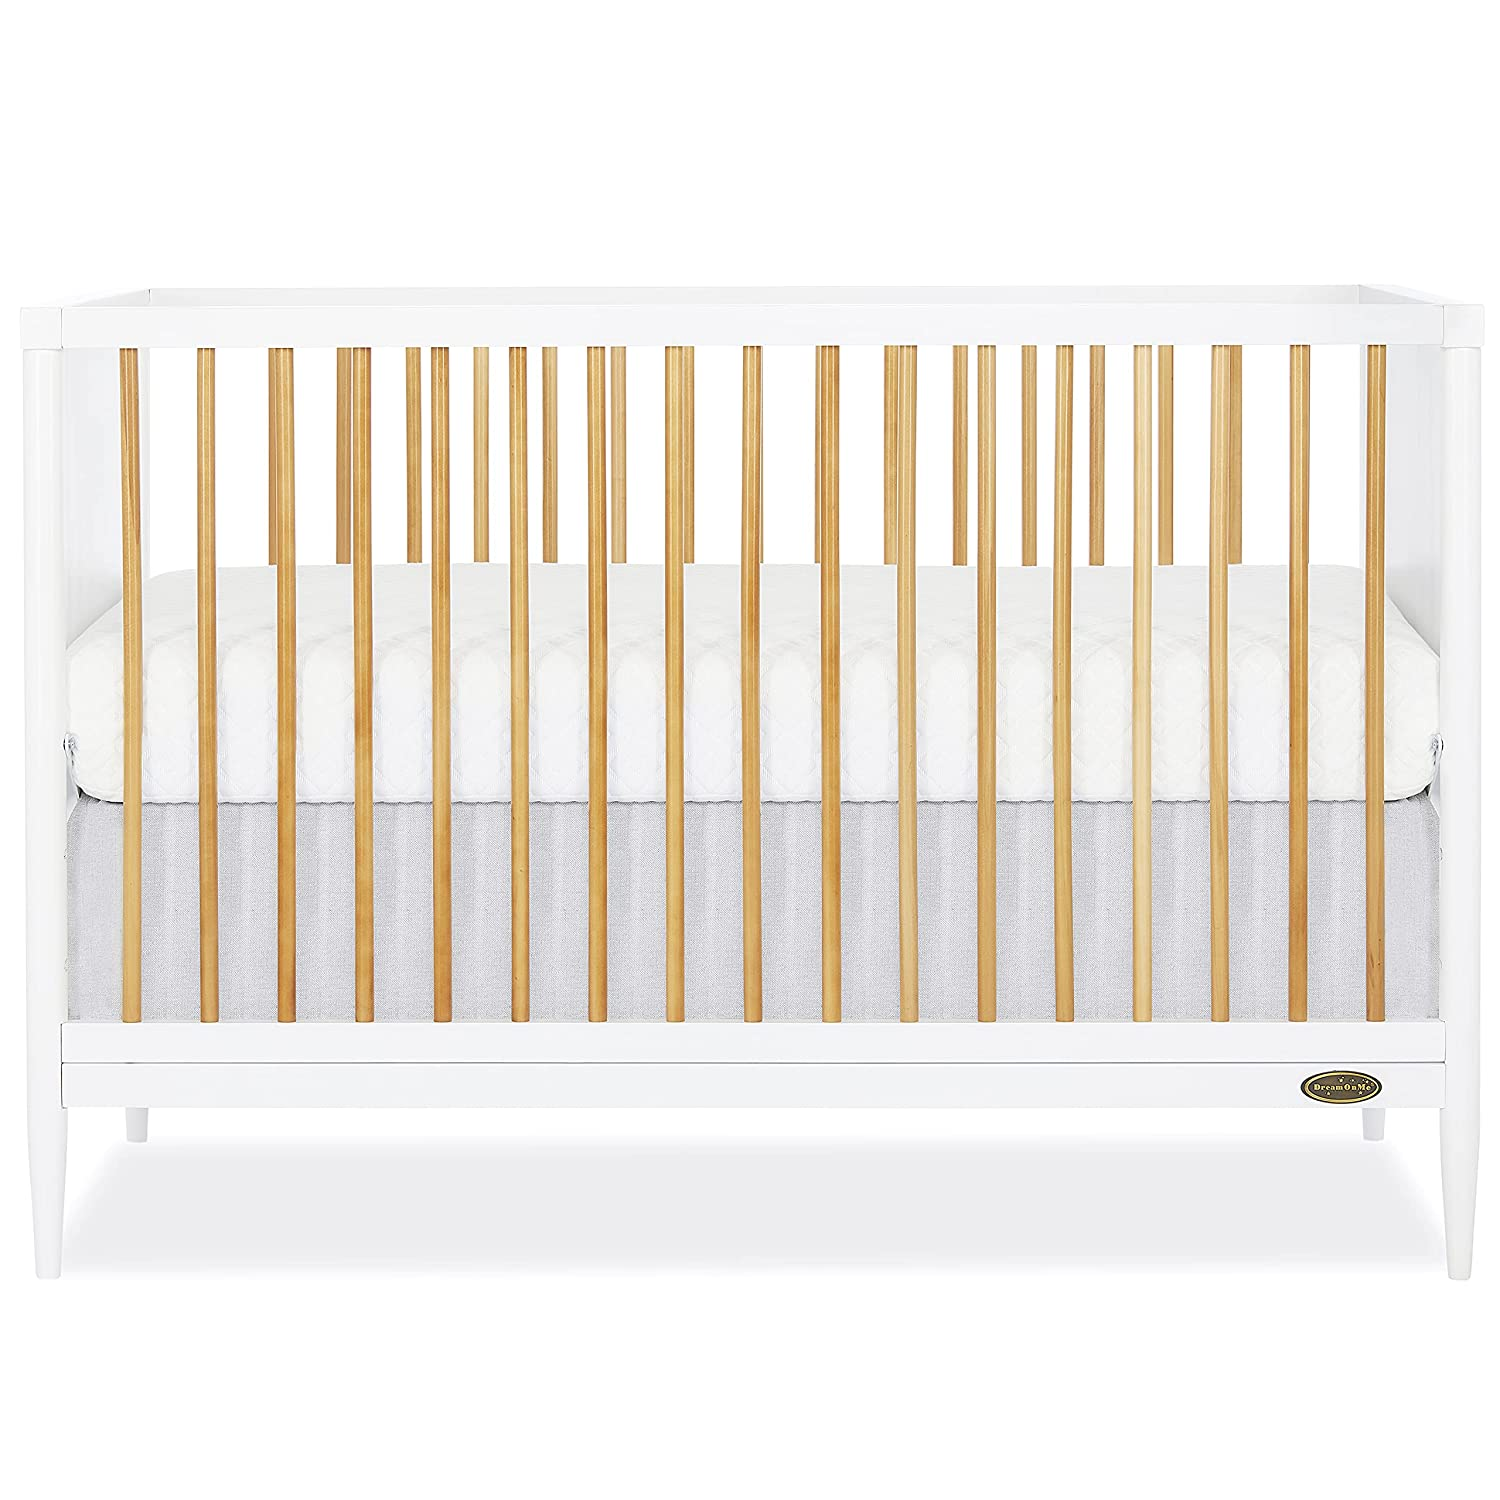 Clover 4-in-1 outlet Modern Island Crib Convert Rounded I with Spindles Max 50% OFF